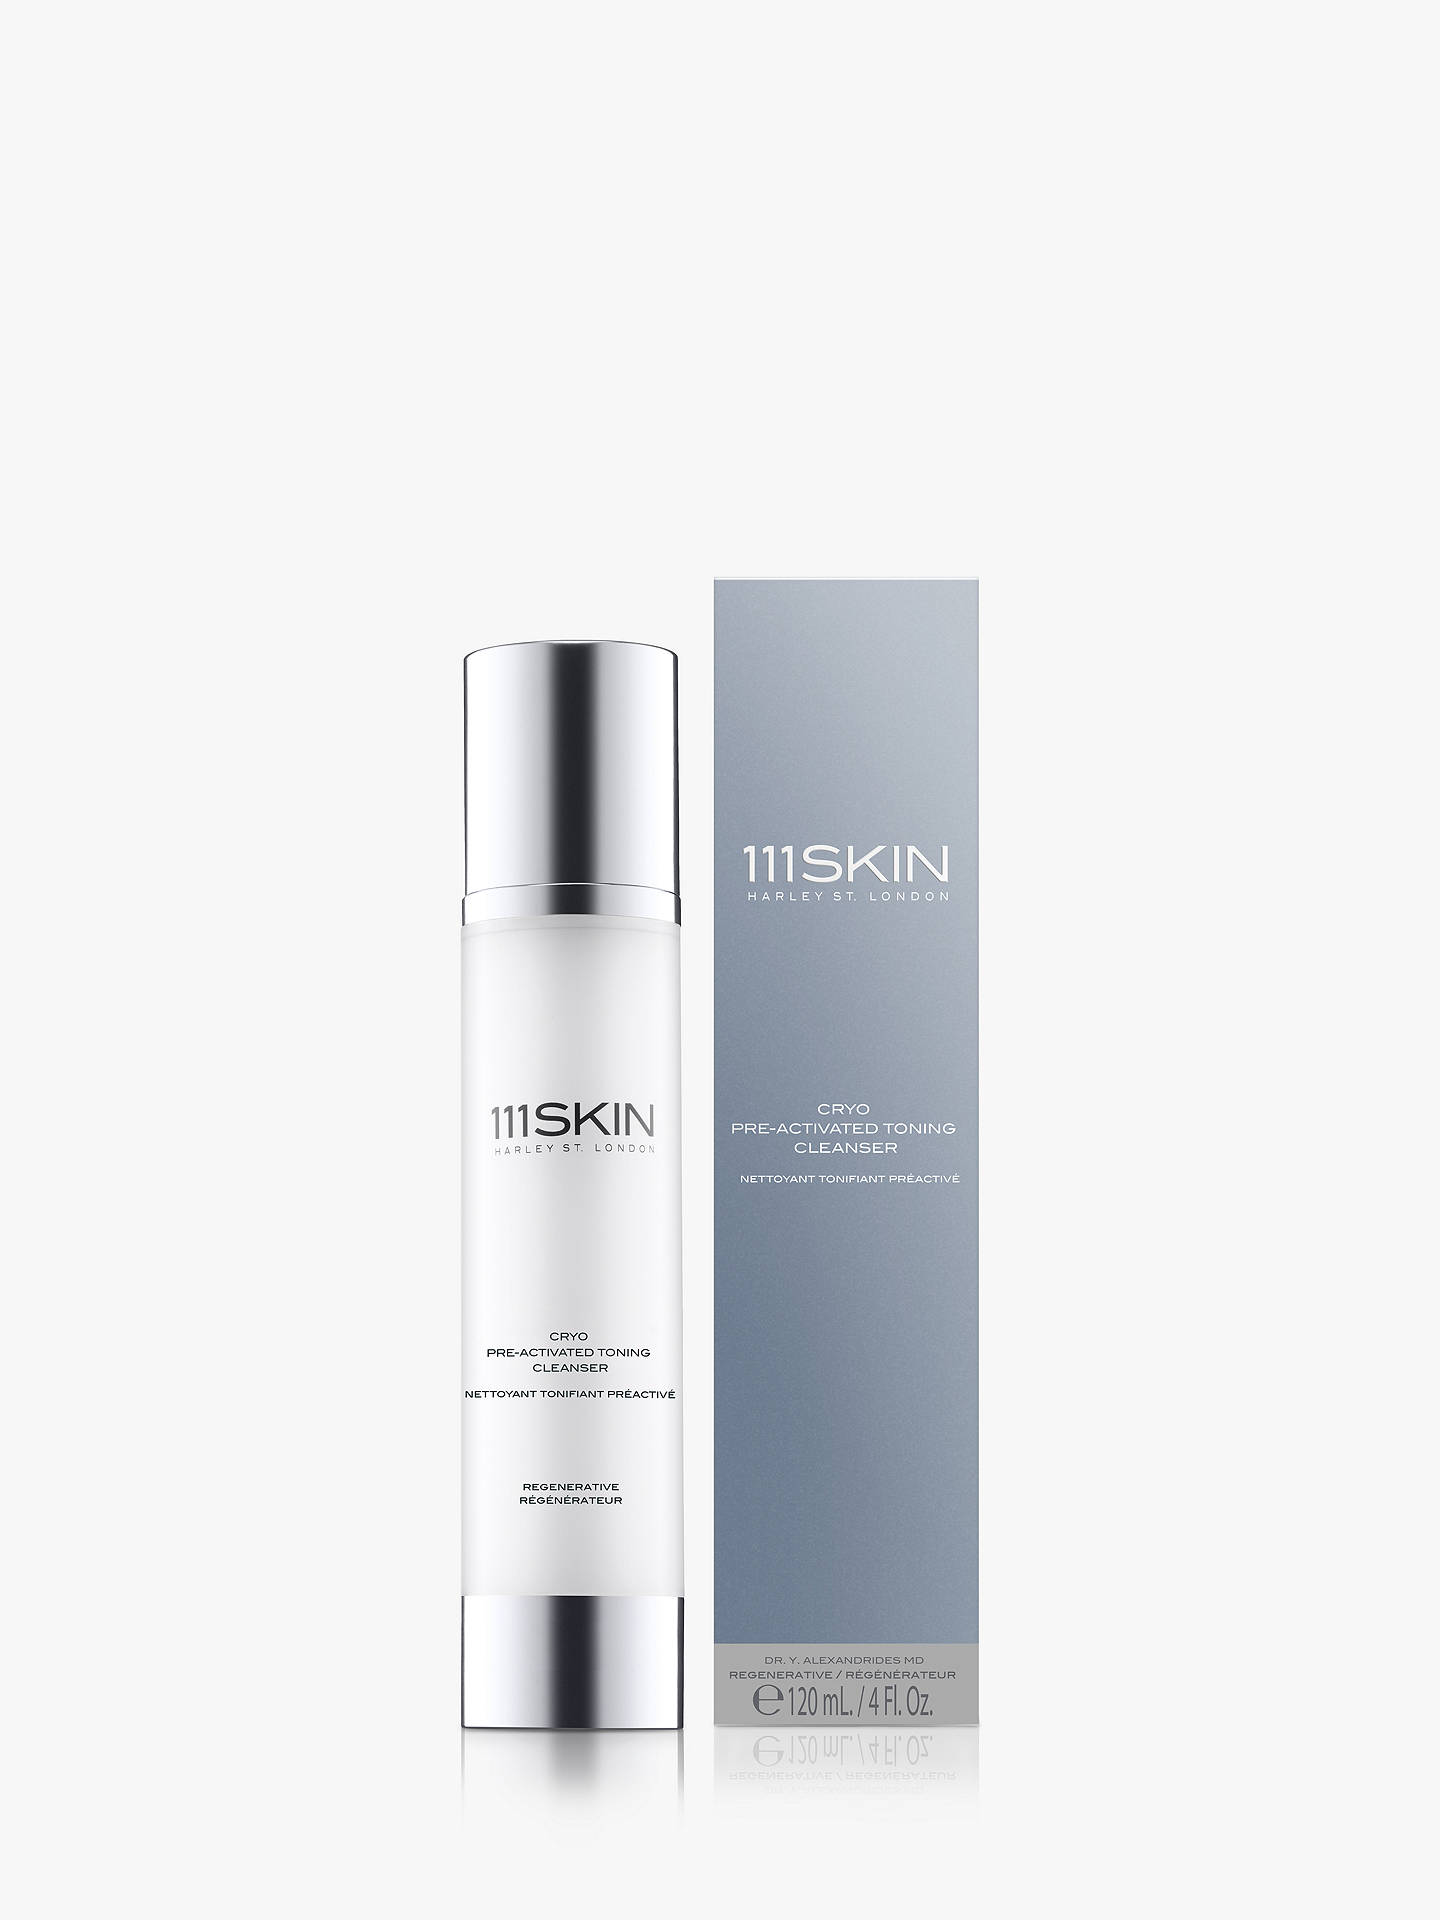 Buy 111SKIN Cryo Pre-Activated Toning Cleanser, 120ml Online at johnlewis.com